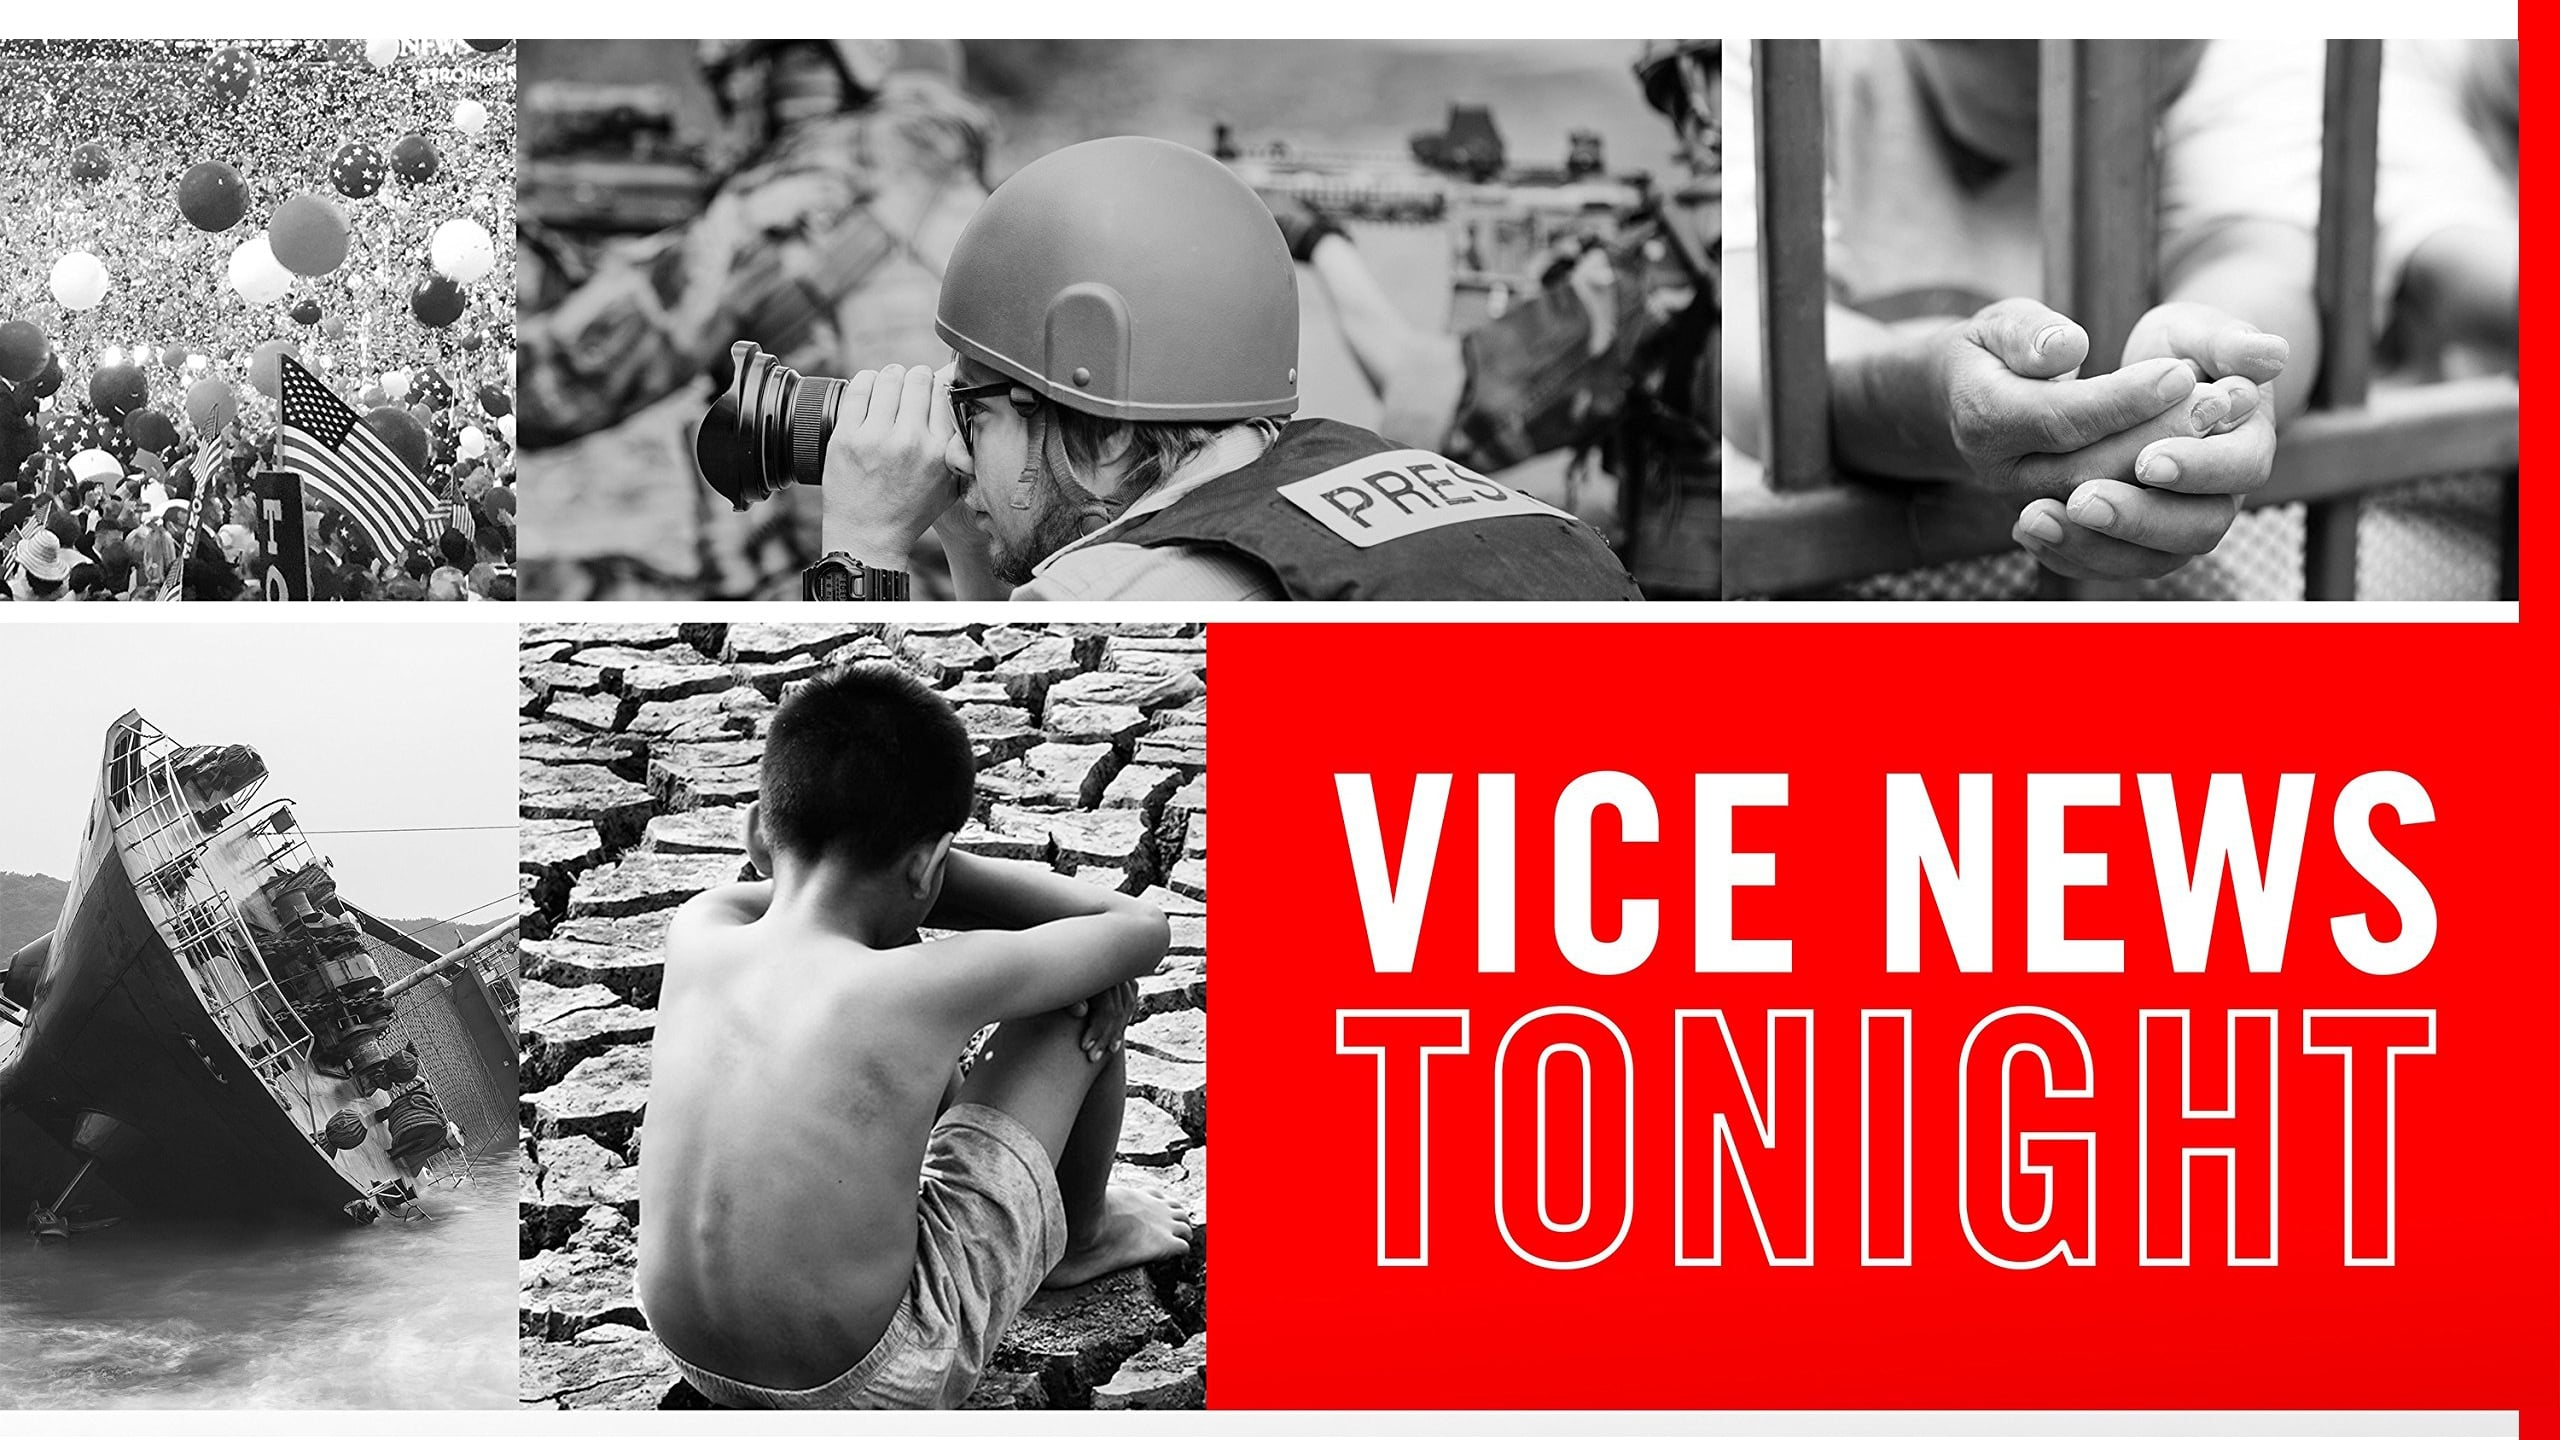 VICE News Tonight - Season 1